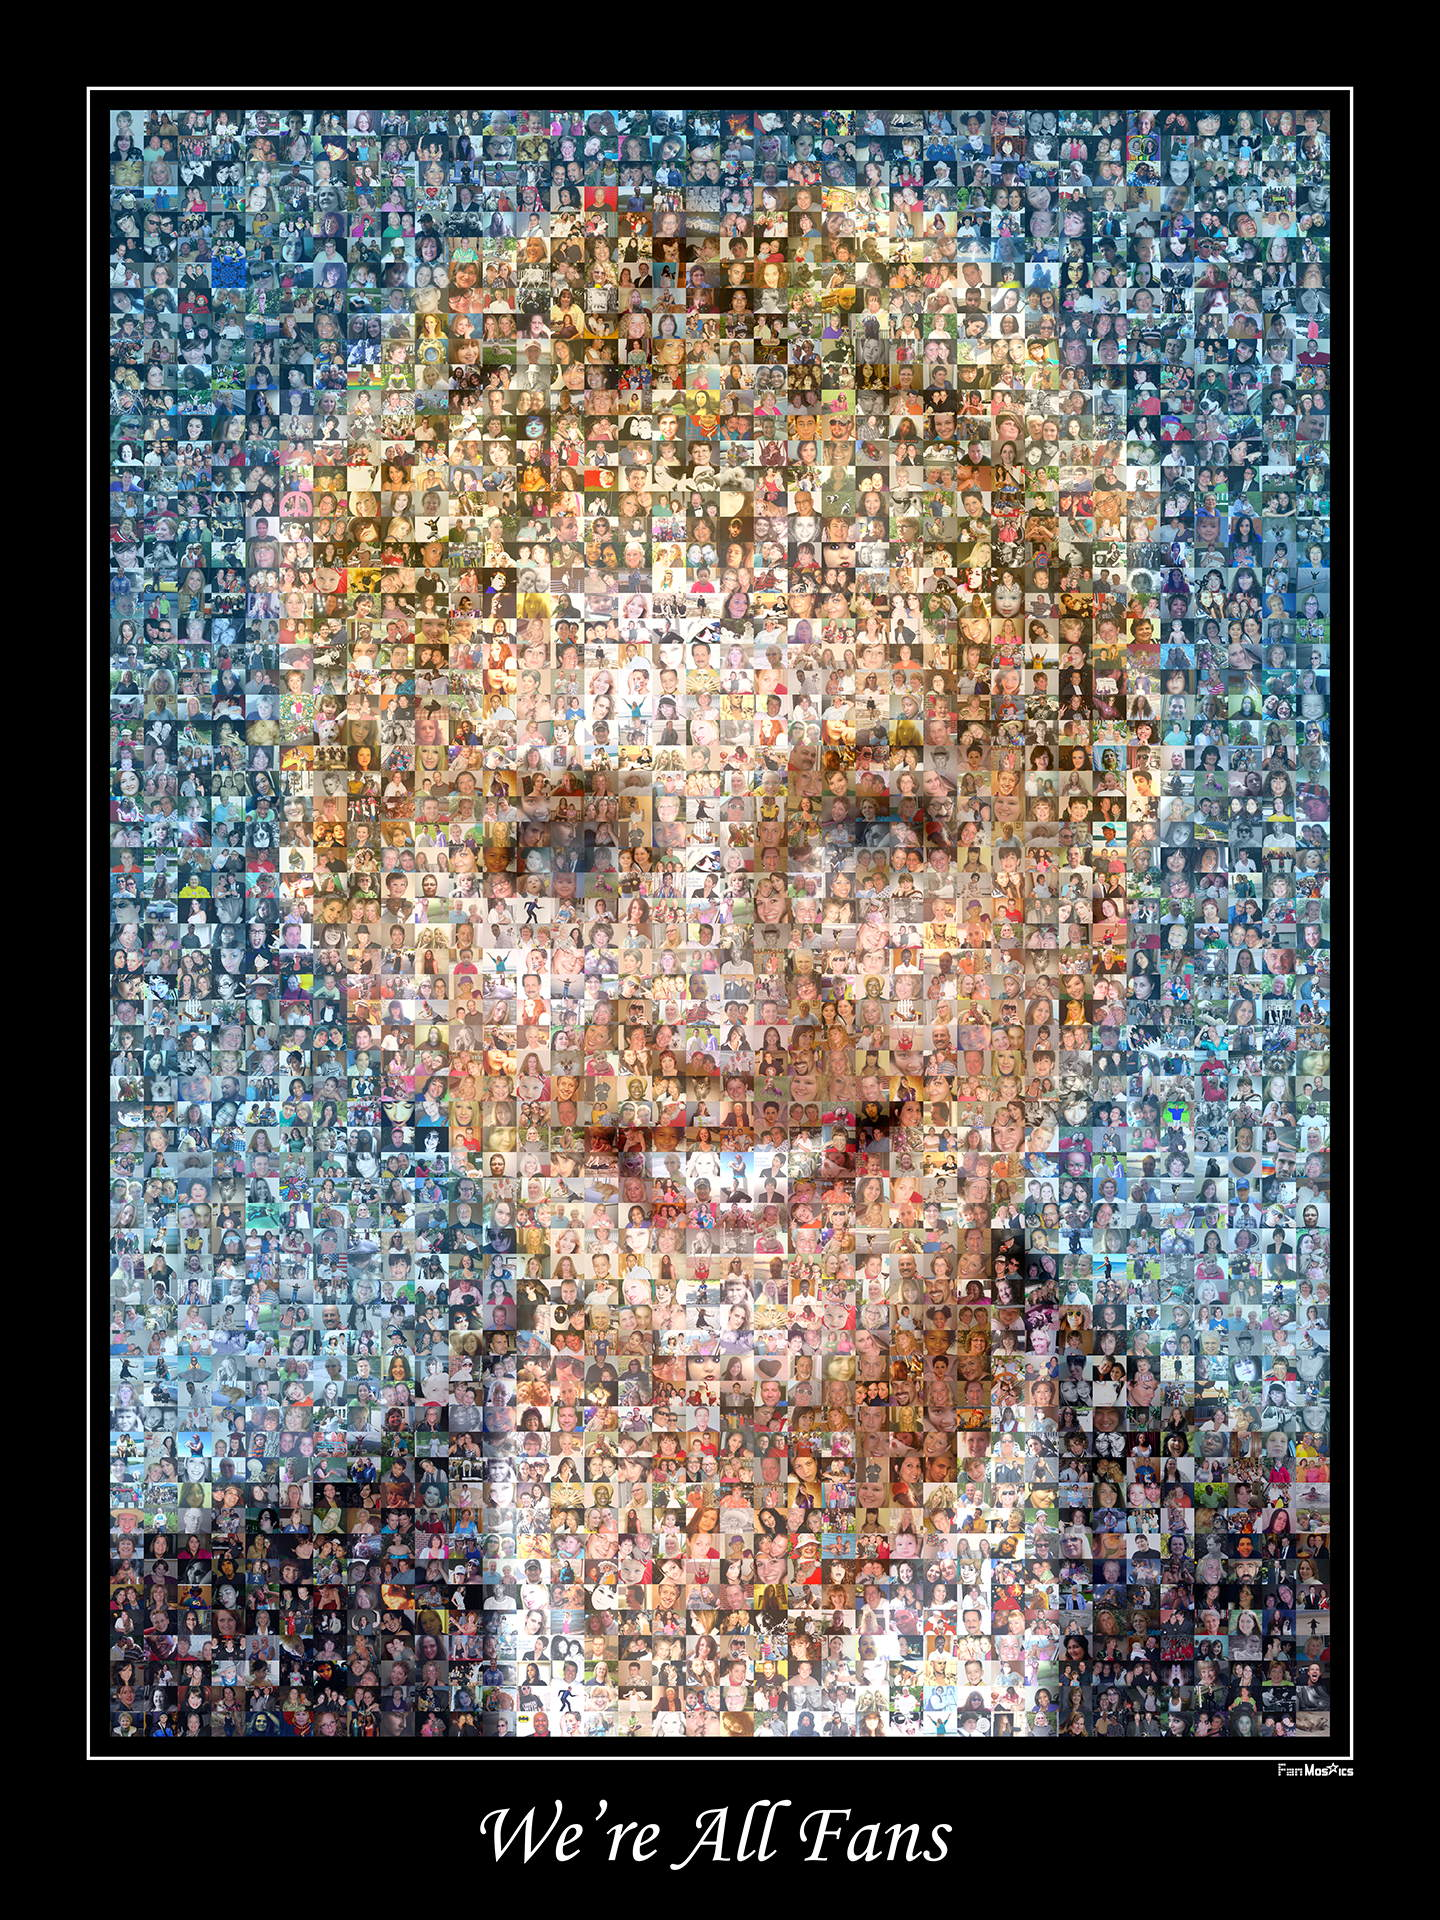 photo mosaic created using almost 2,000 fan photos